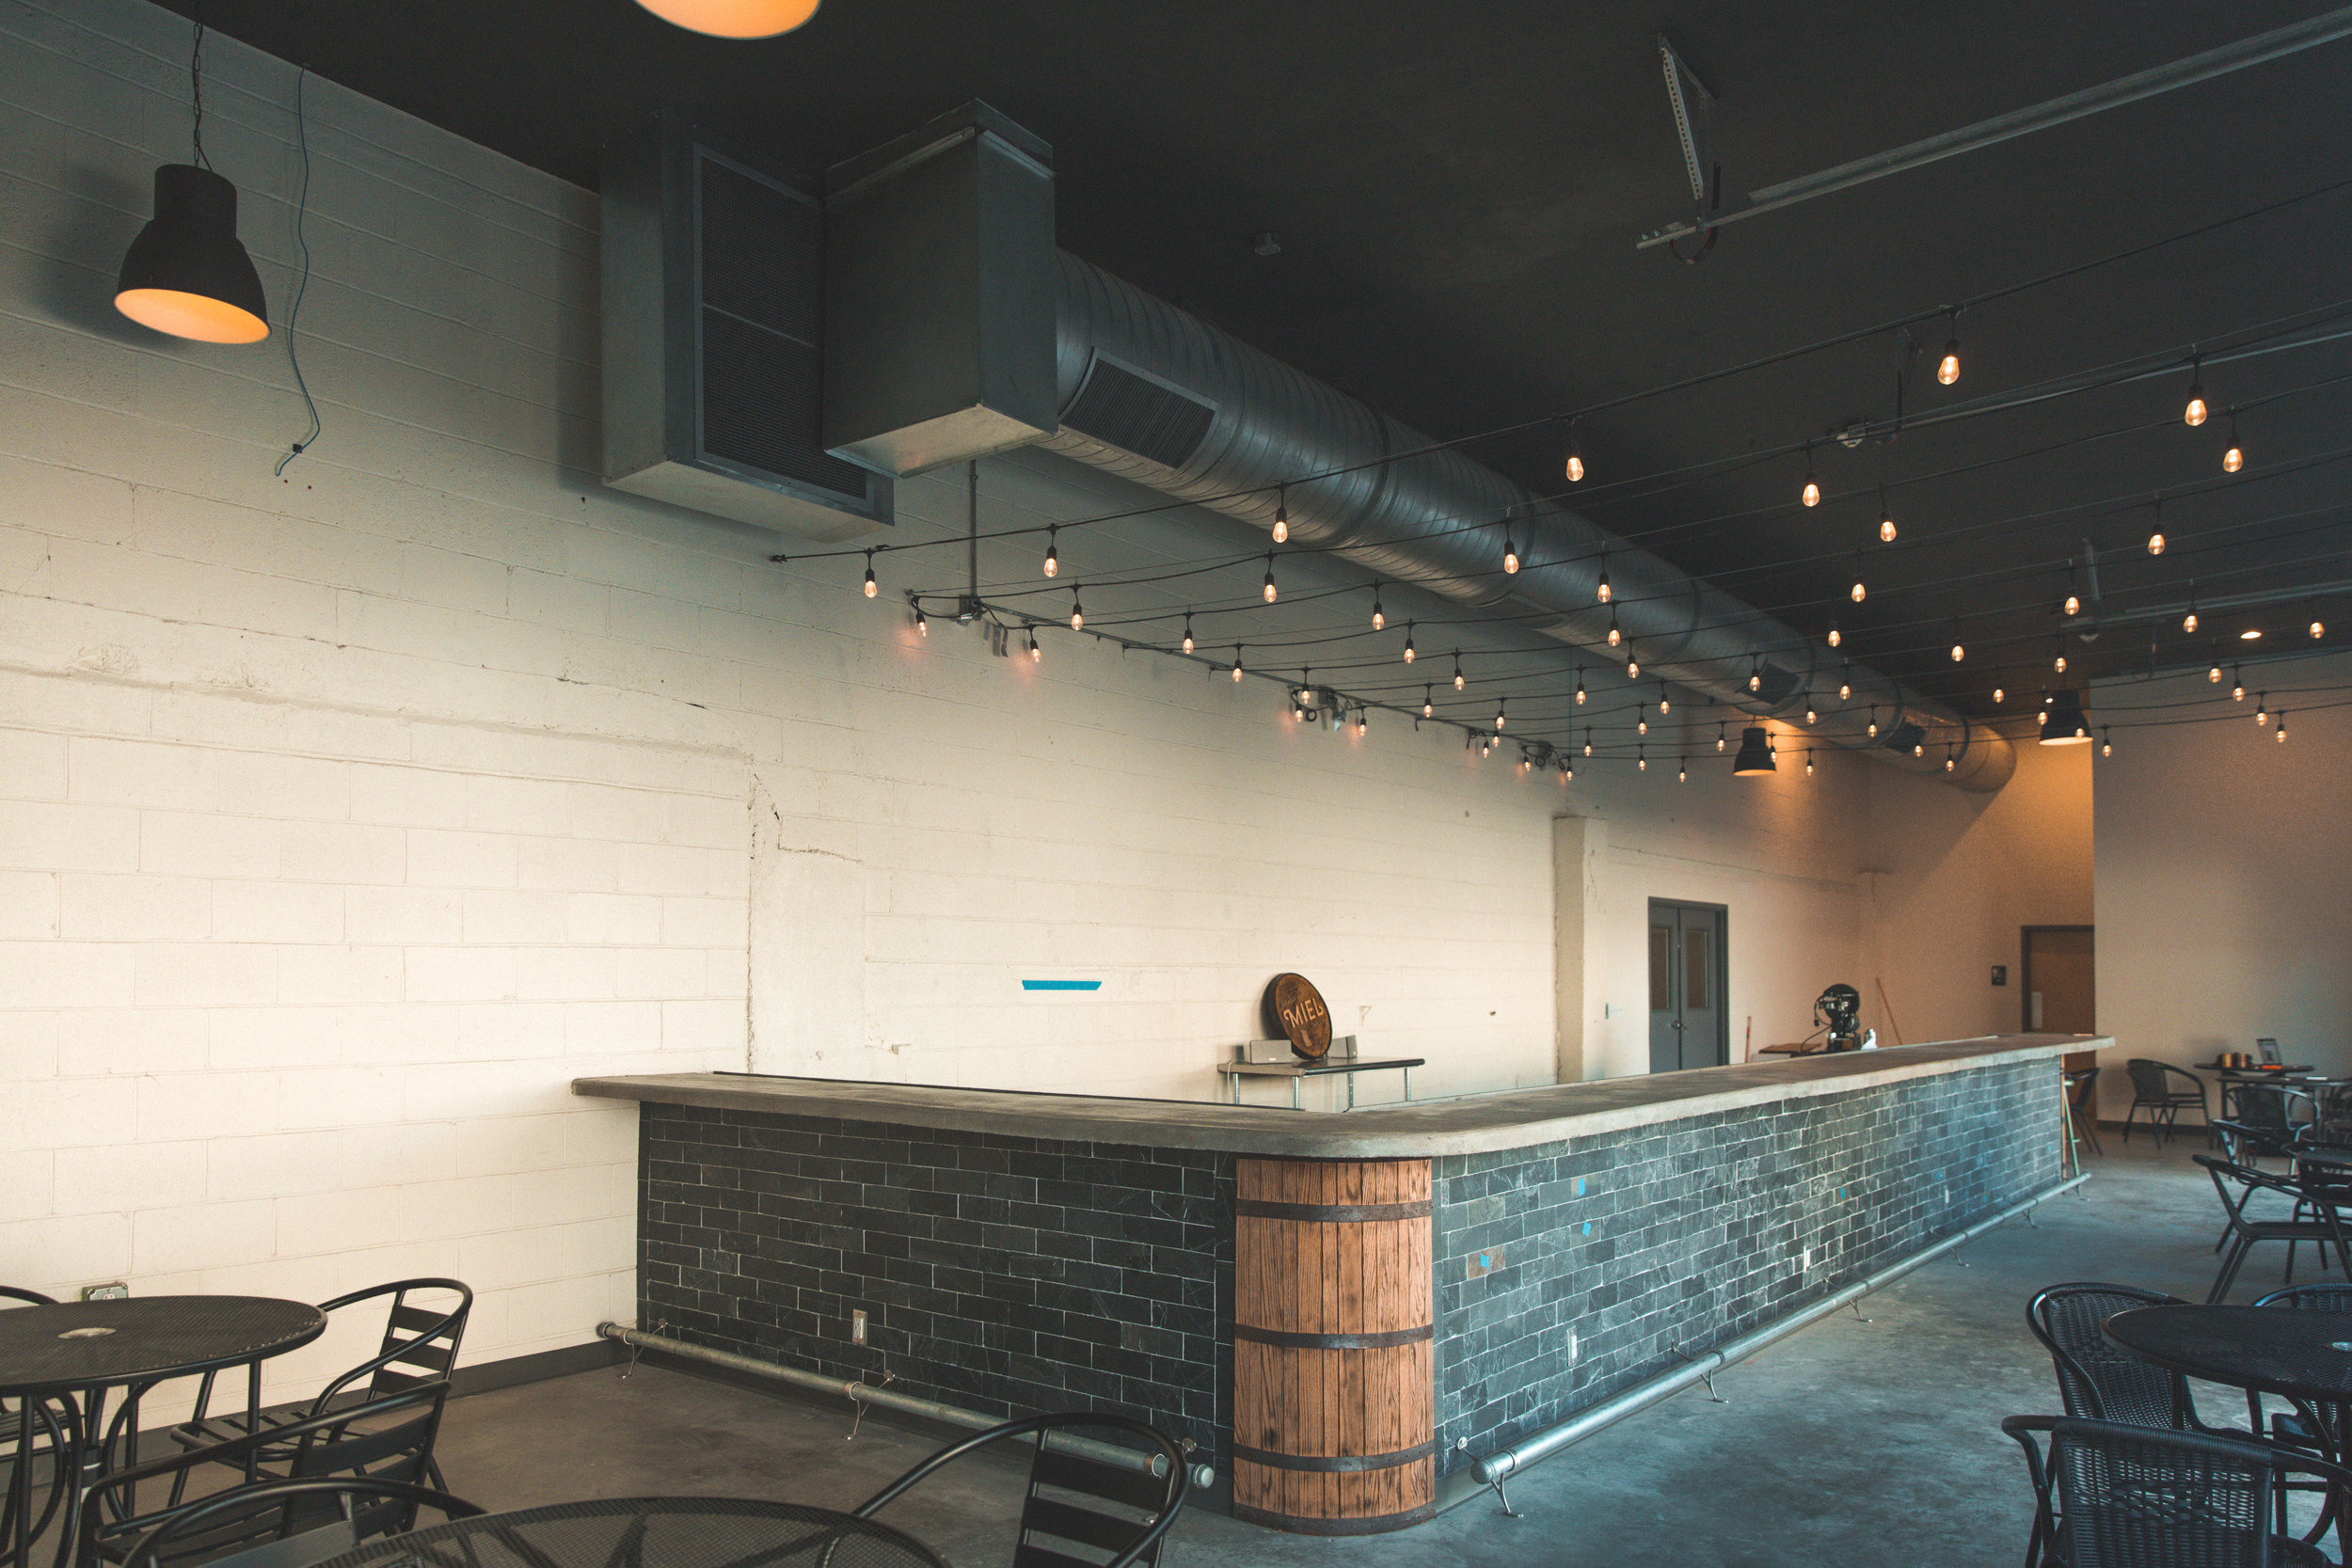 New Orleans_Miel Brewery_July 2018_Taproom view 2